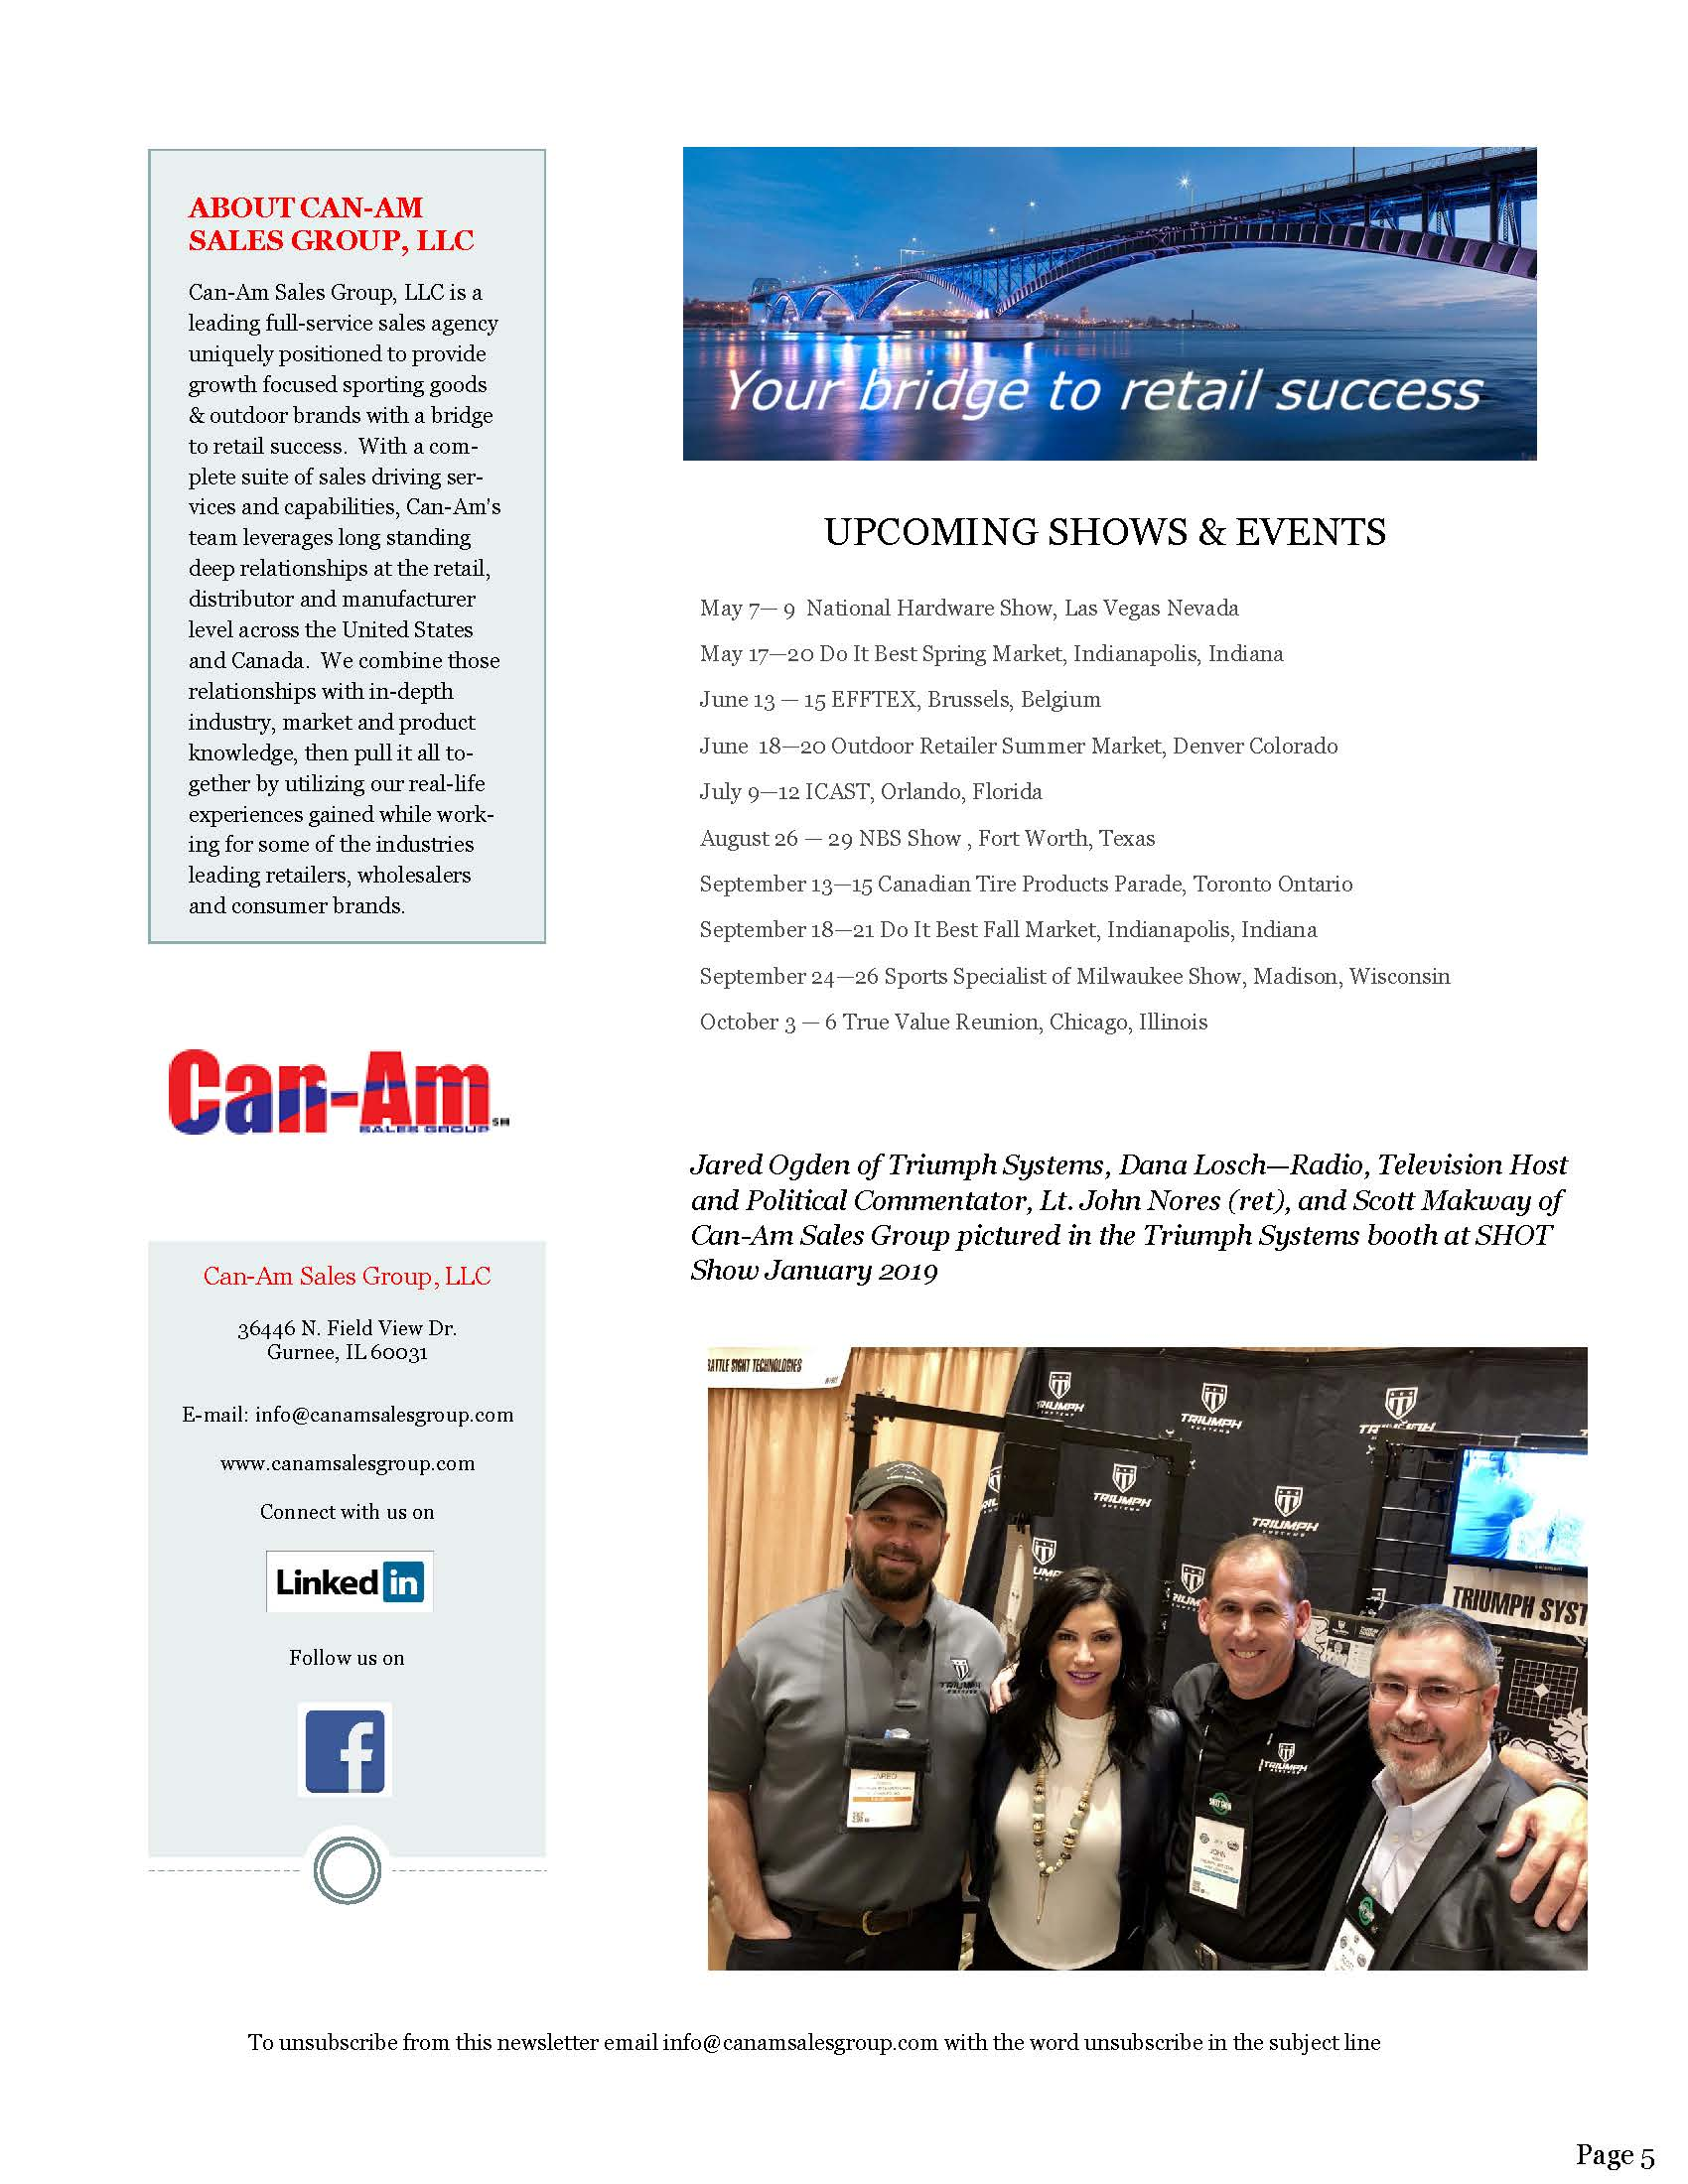 Can-Am Sales Group Newsletter Vol2-page5